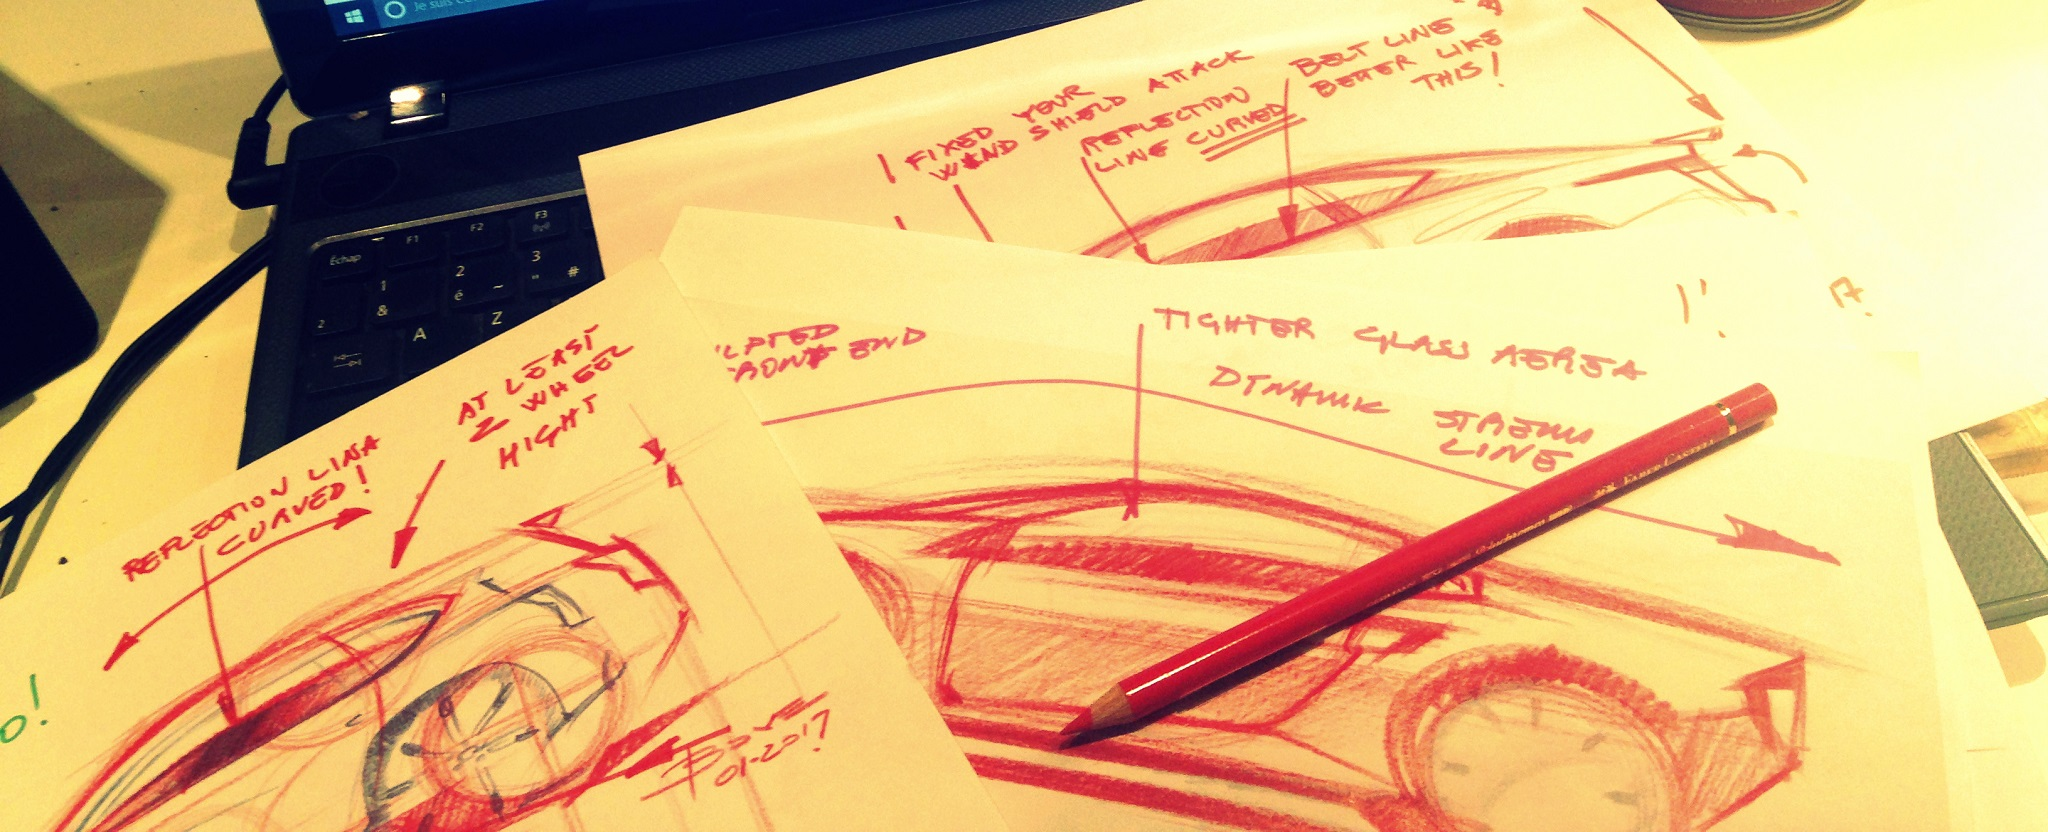 Corrections sample about sketching cars by Luciano Bove